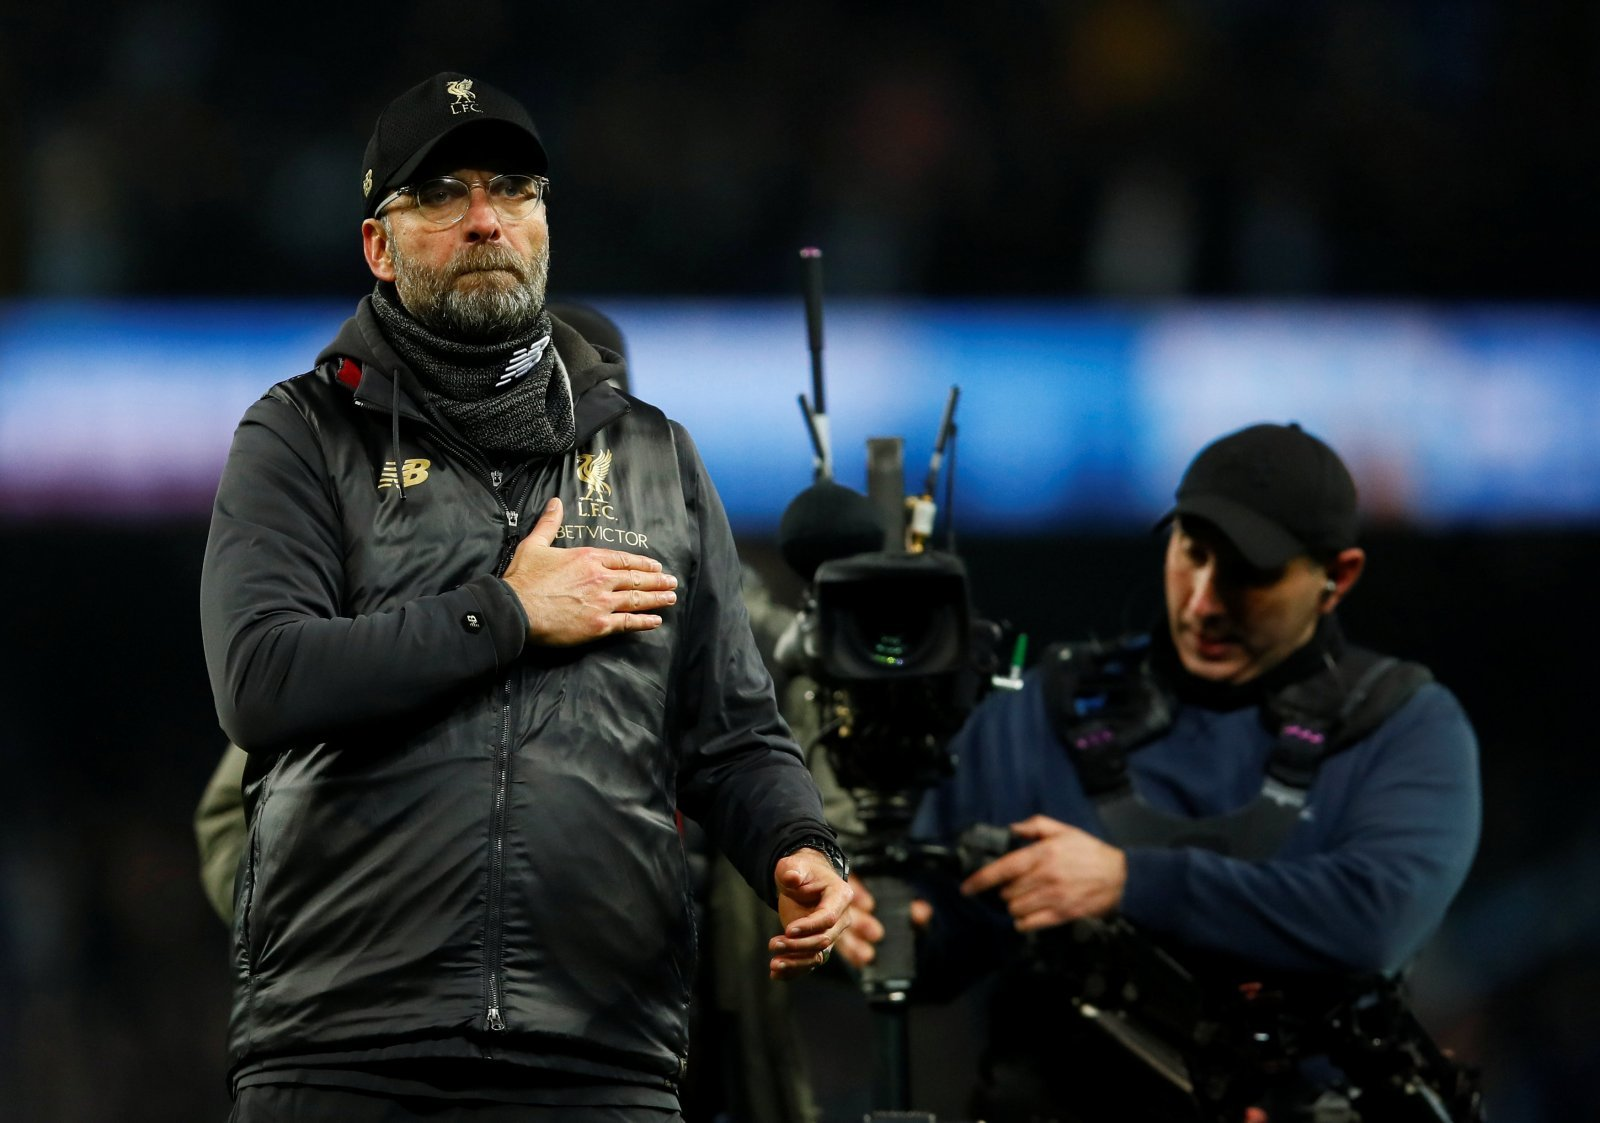 Liverpool fans on Twitter have no doubt latest Klopp rumours are false